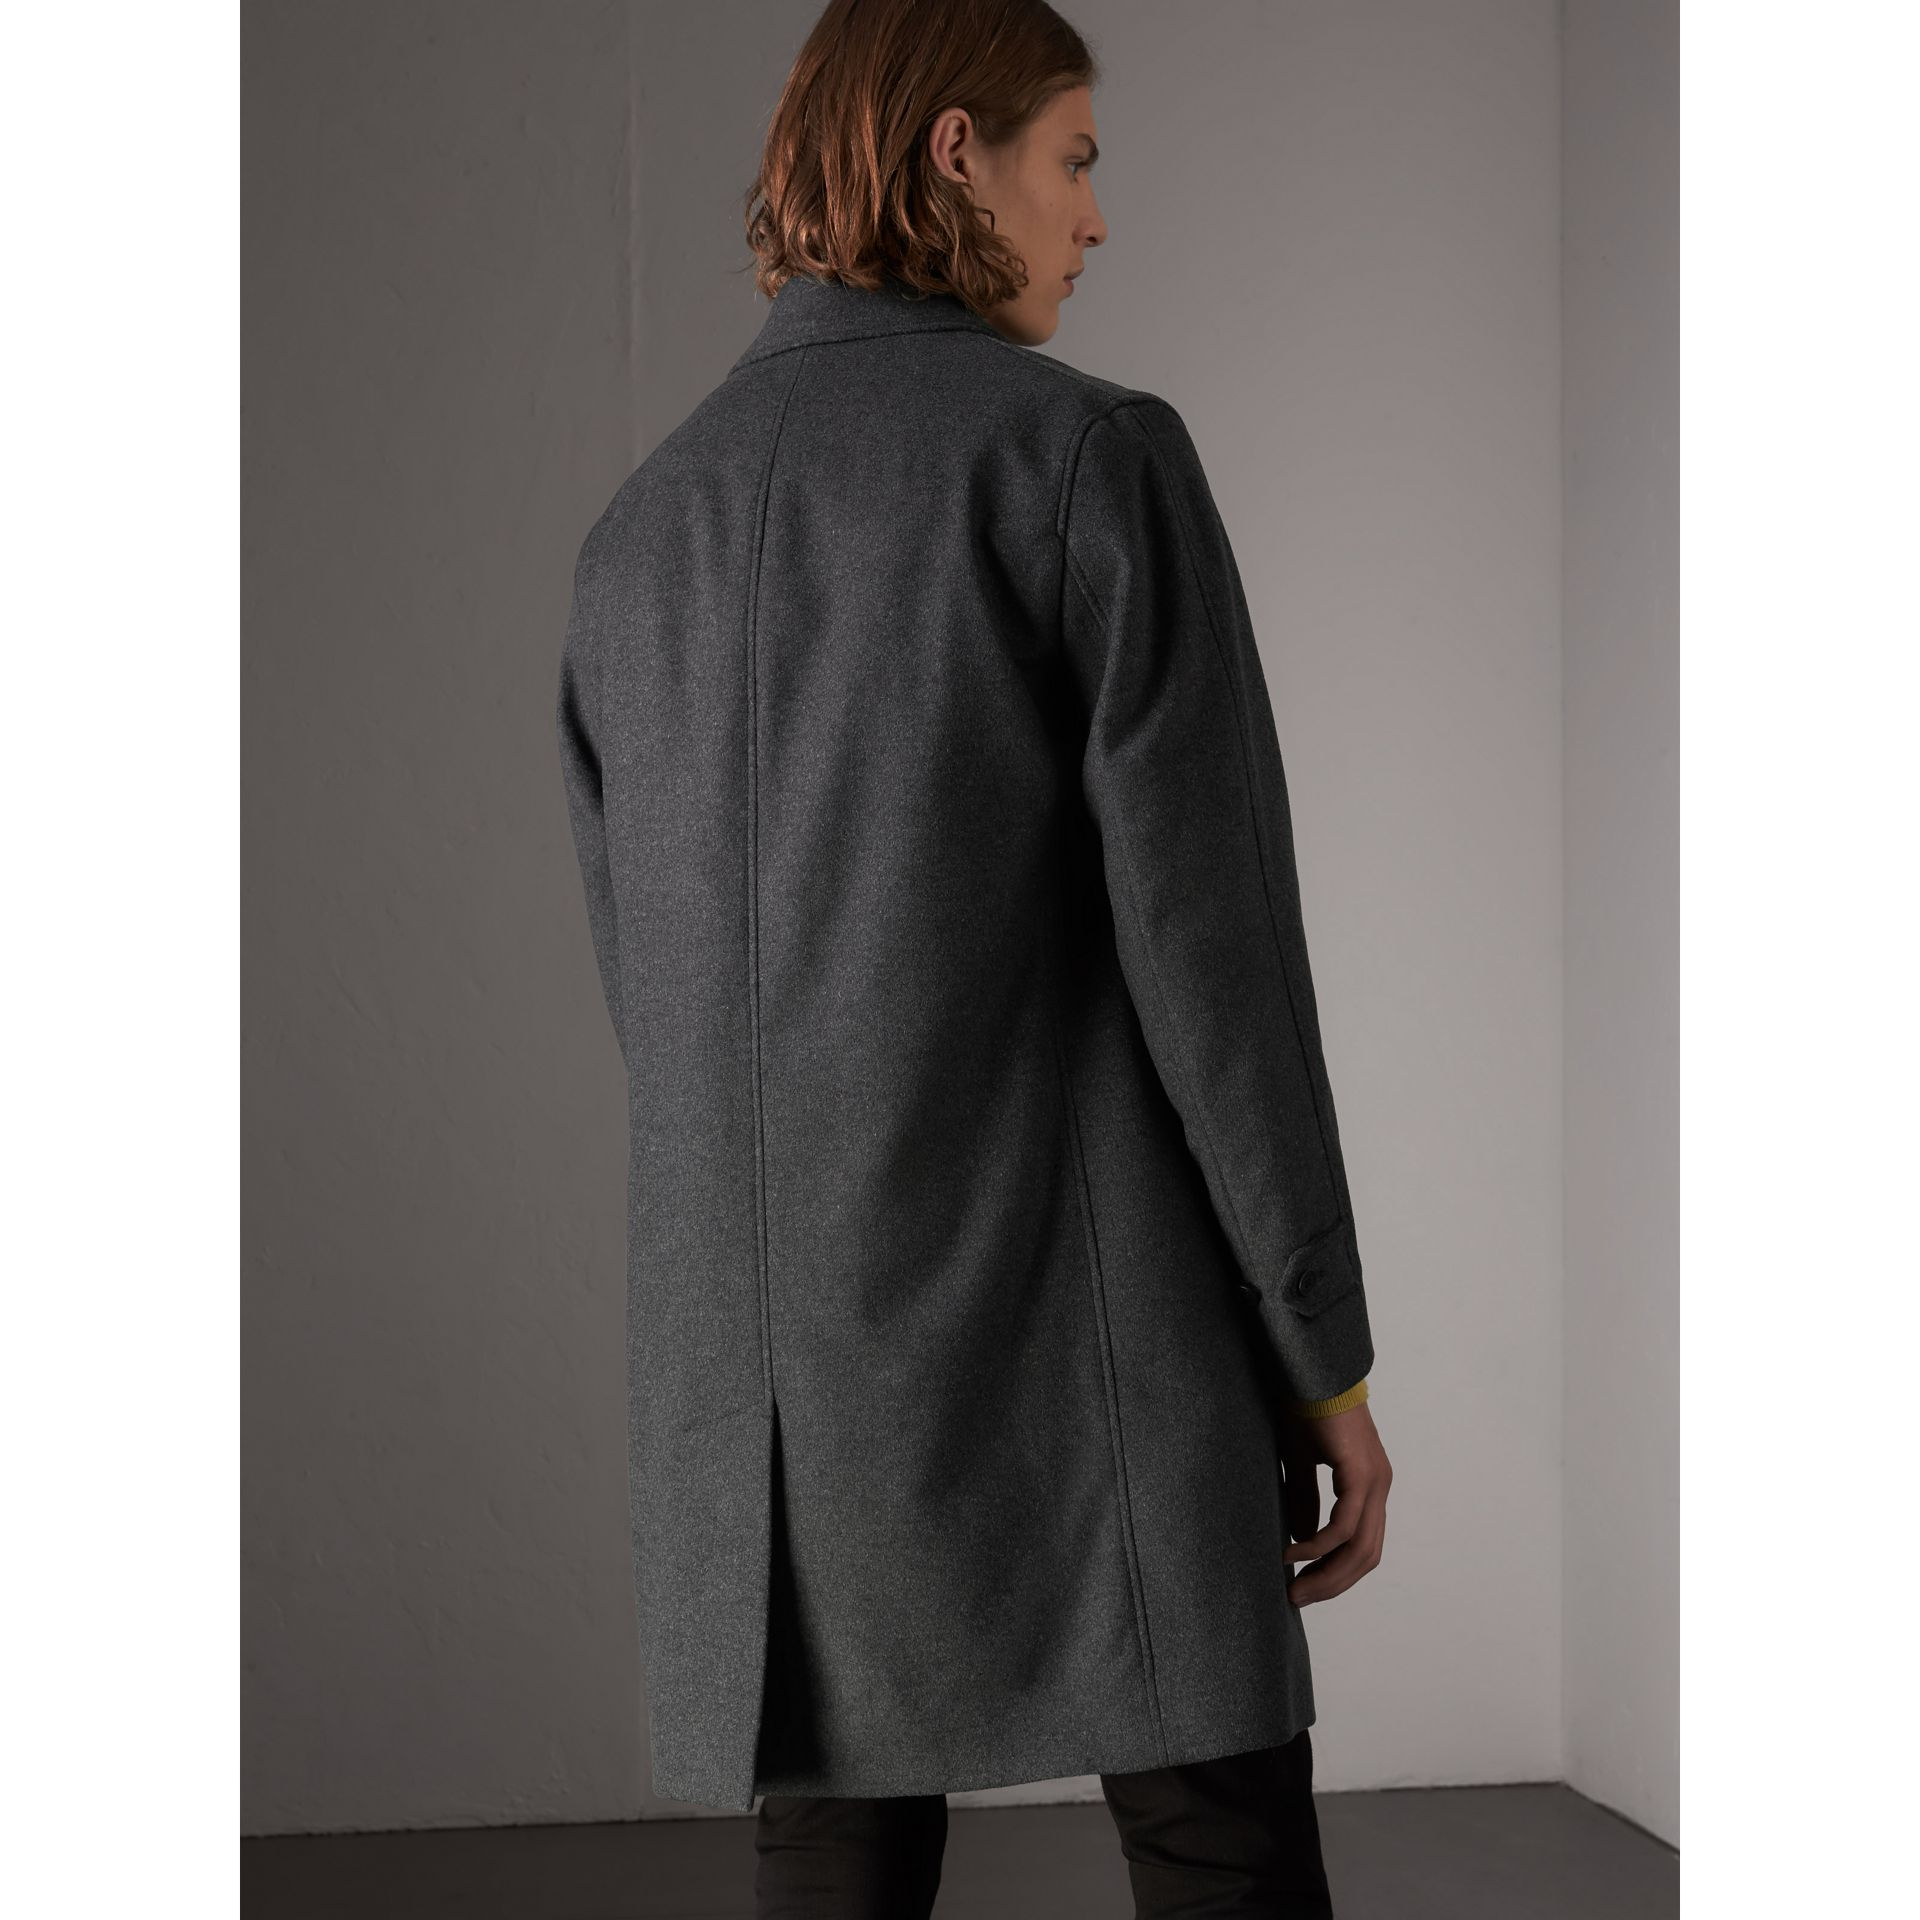 Wool Cashmere Blend Car Coat with Detachable Gilet in Dark Grey Melange - Men | Burberry - gallery image 2